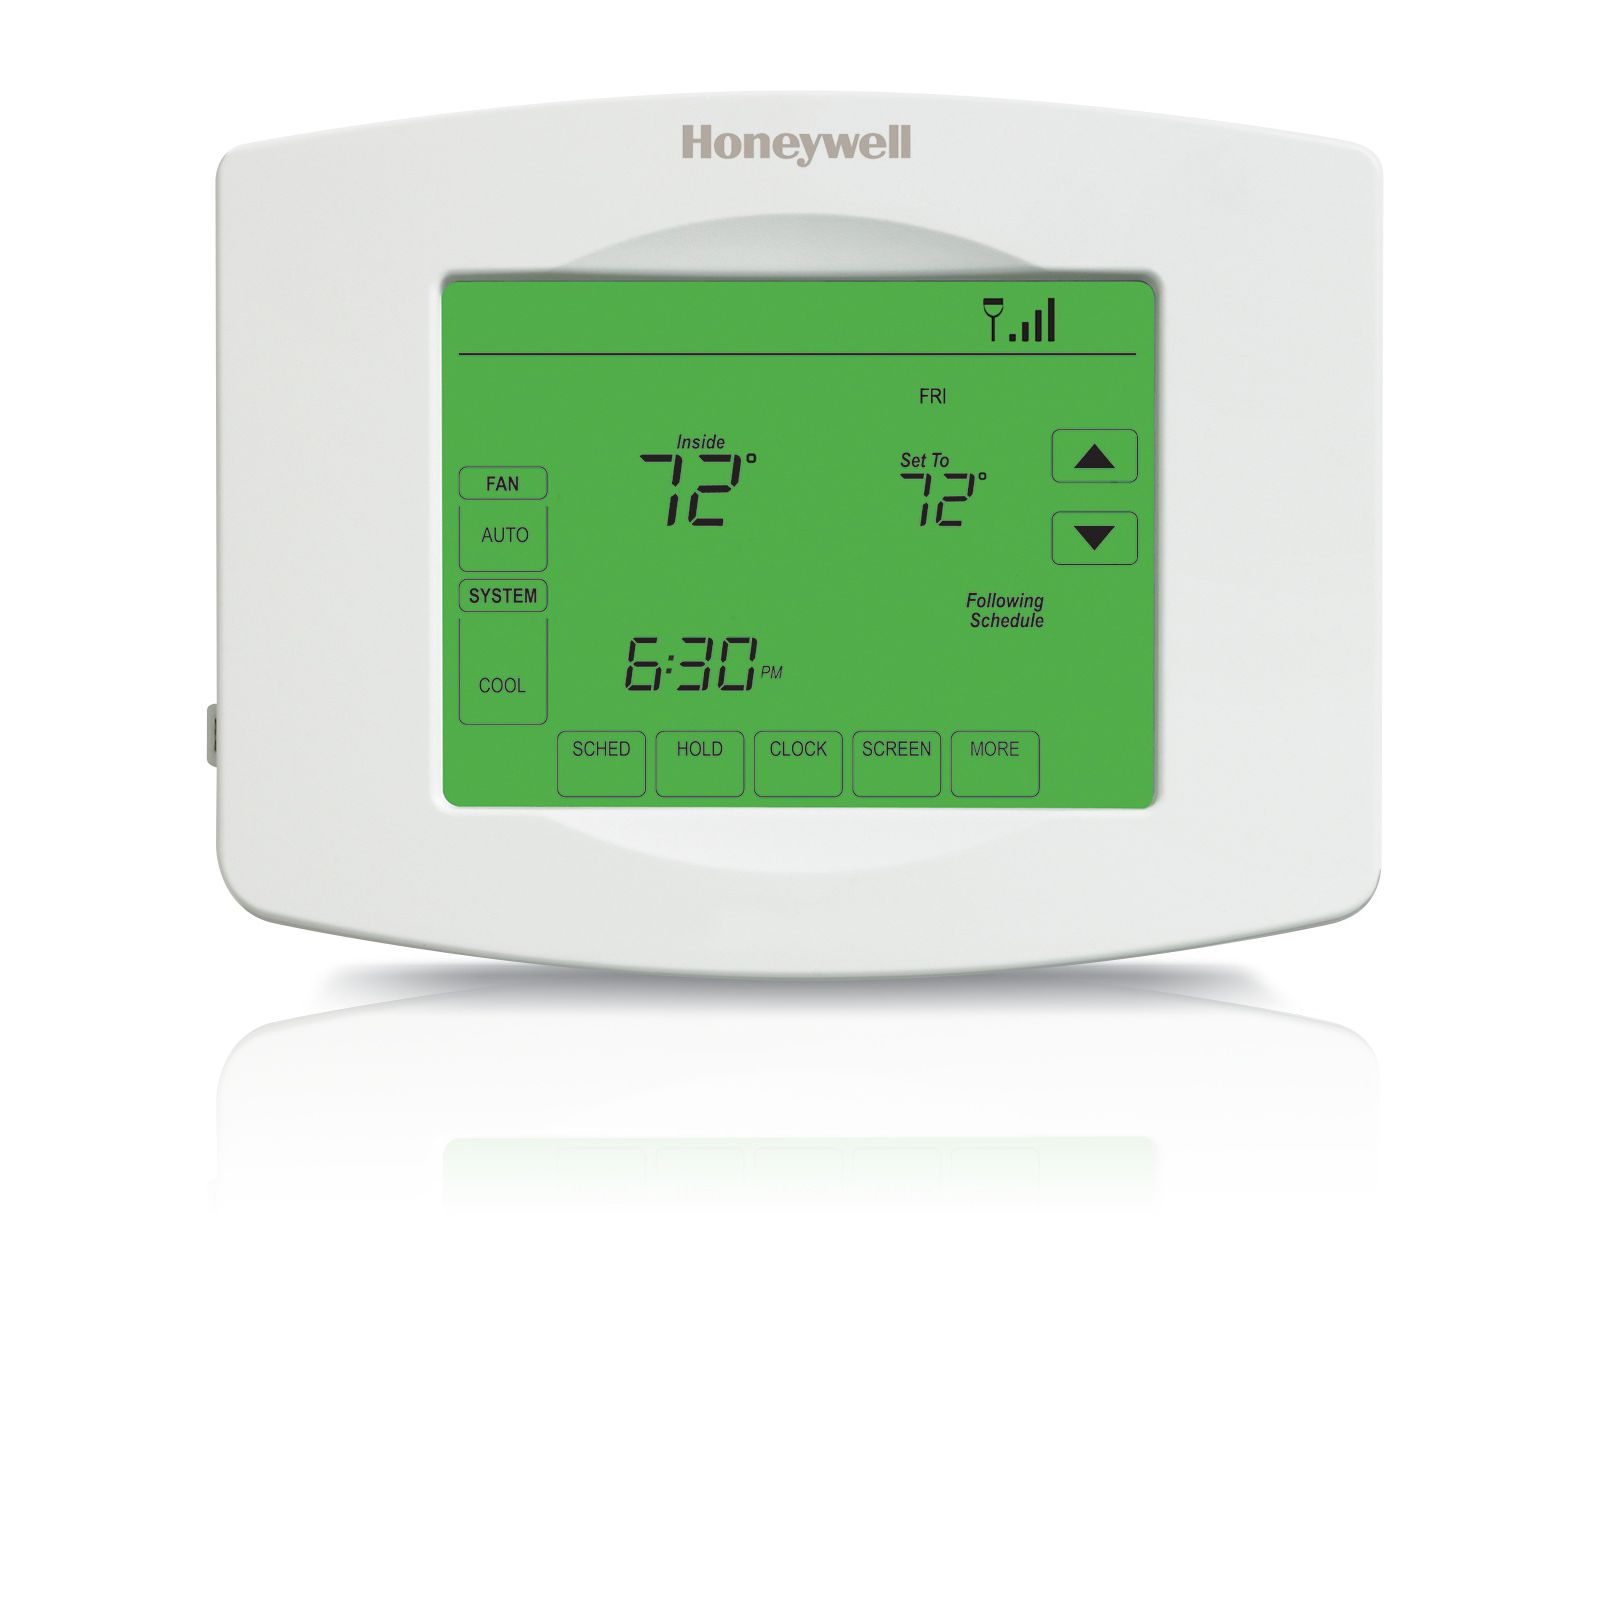 Honeywell TH8320WF1029 - Wi-Fi VisionPRO® 8000 Touchscreen  Programmable/Non-Programmable Thermostat 3H/2C